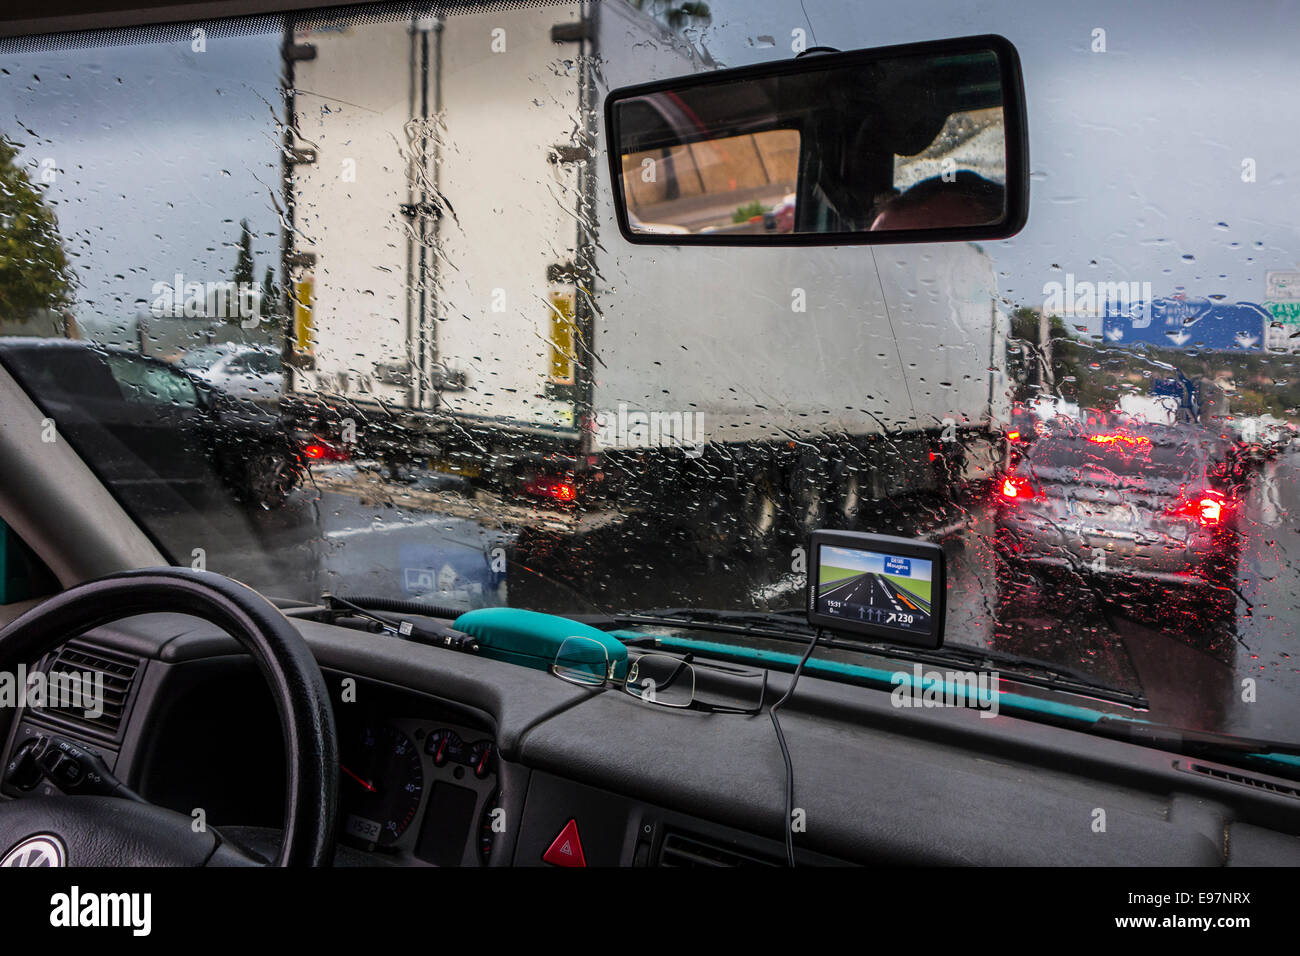 Truck overtaking cars on highway during heavy rain shower seen from inside of vehicle with big raindrops on windscreen - Stock Image